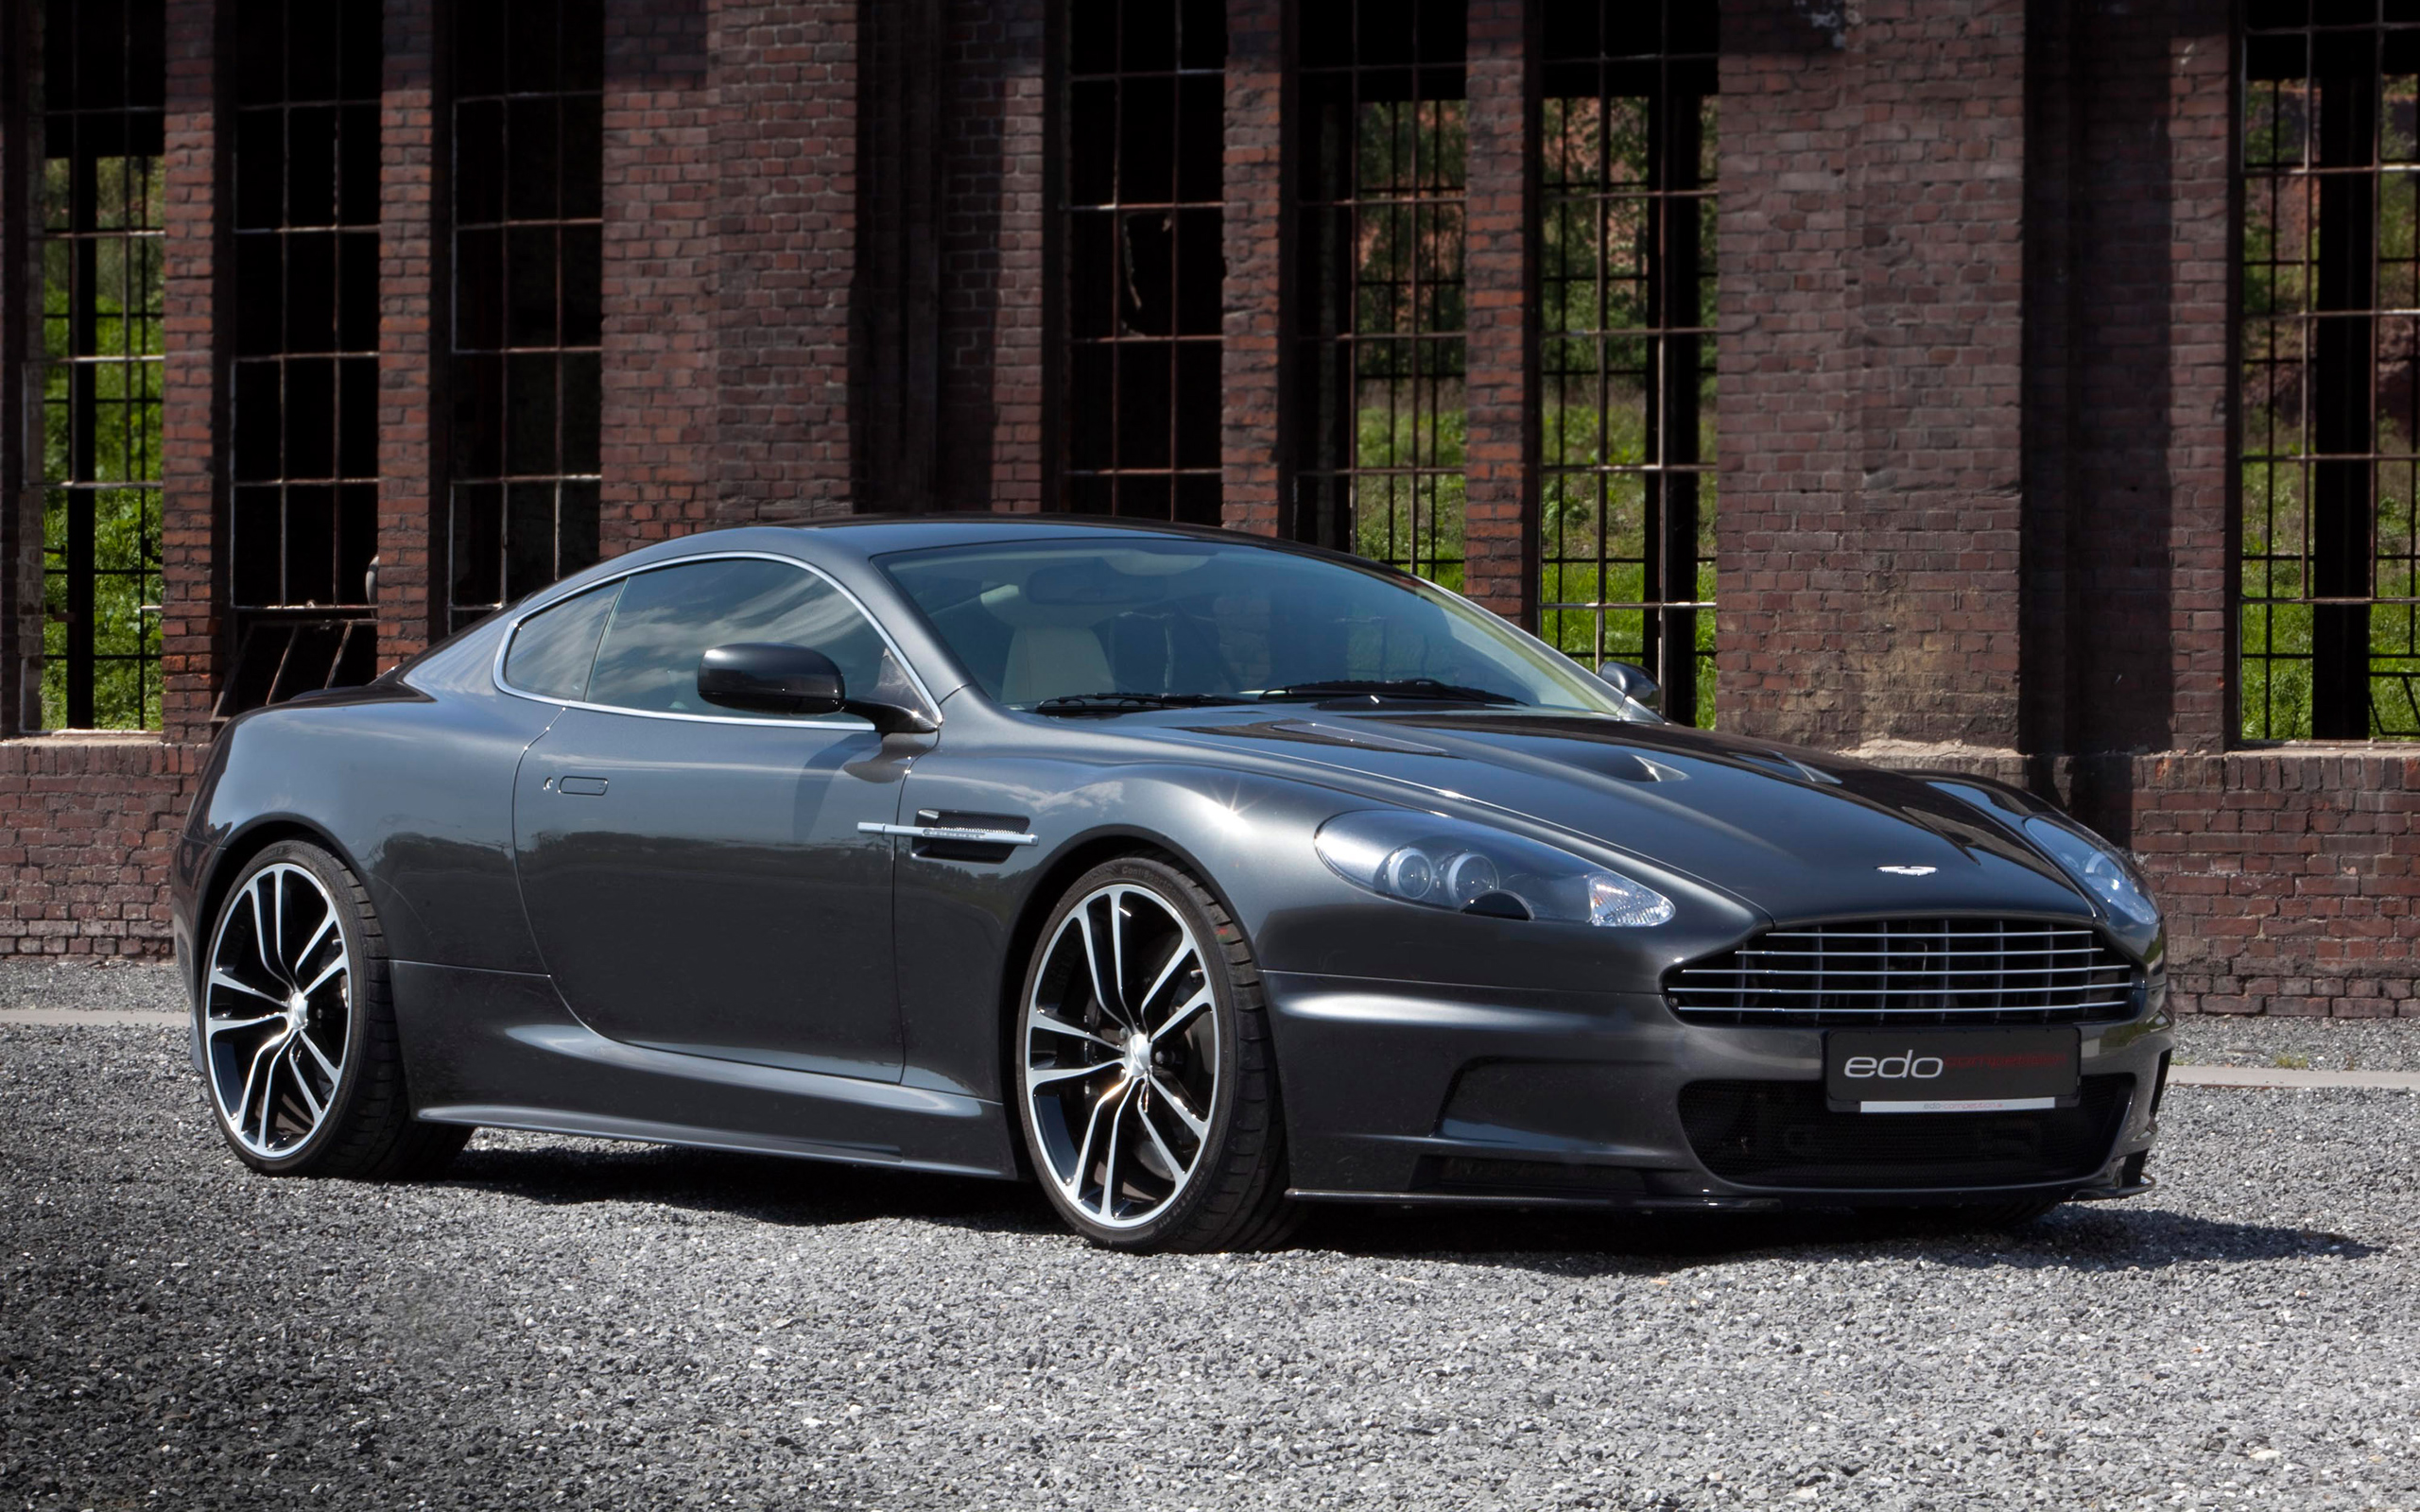 Aston Martin DB Wallpapers Pictures Images